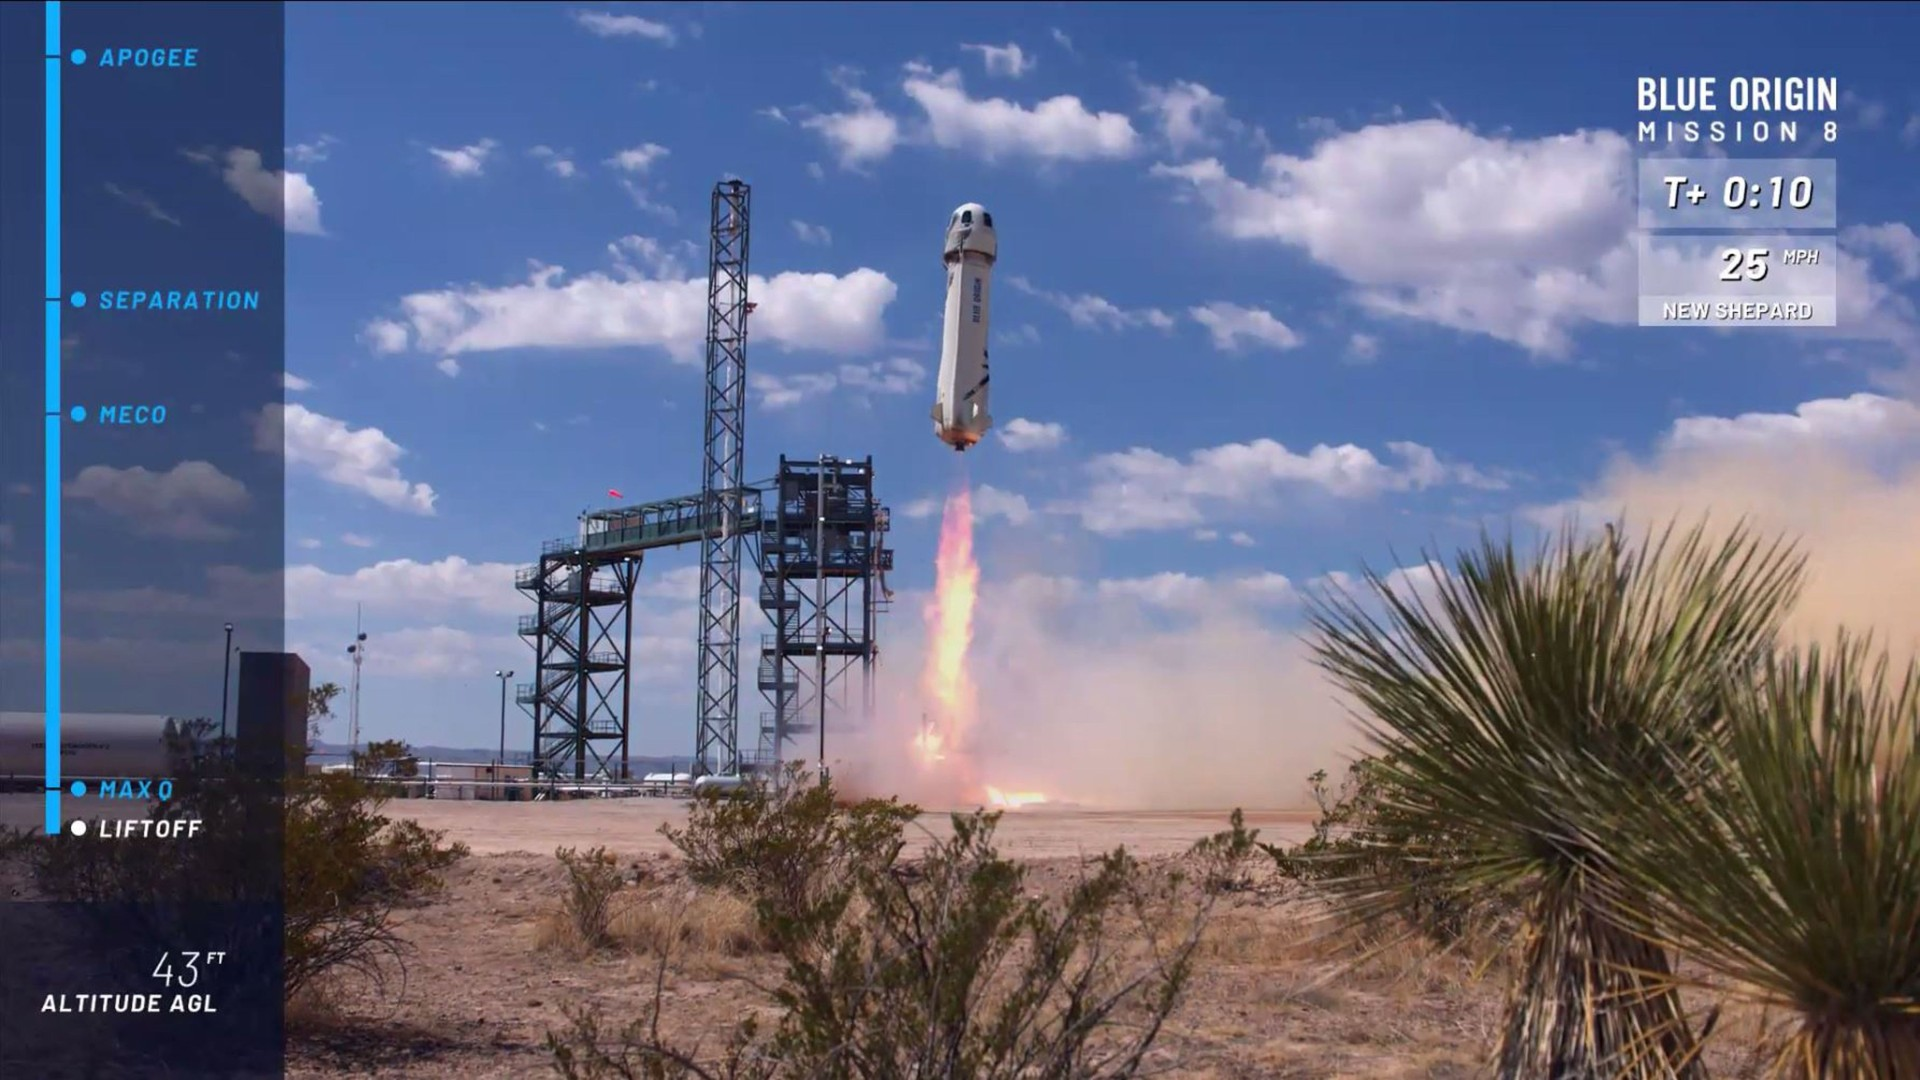 Watch Jeff Bezos' Blue Origin Rocket go to Space and Land Back on Earth